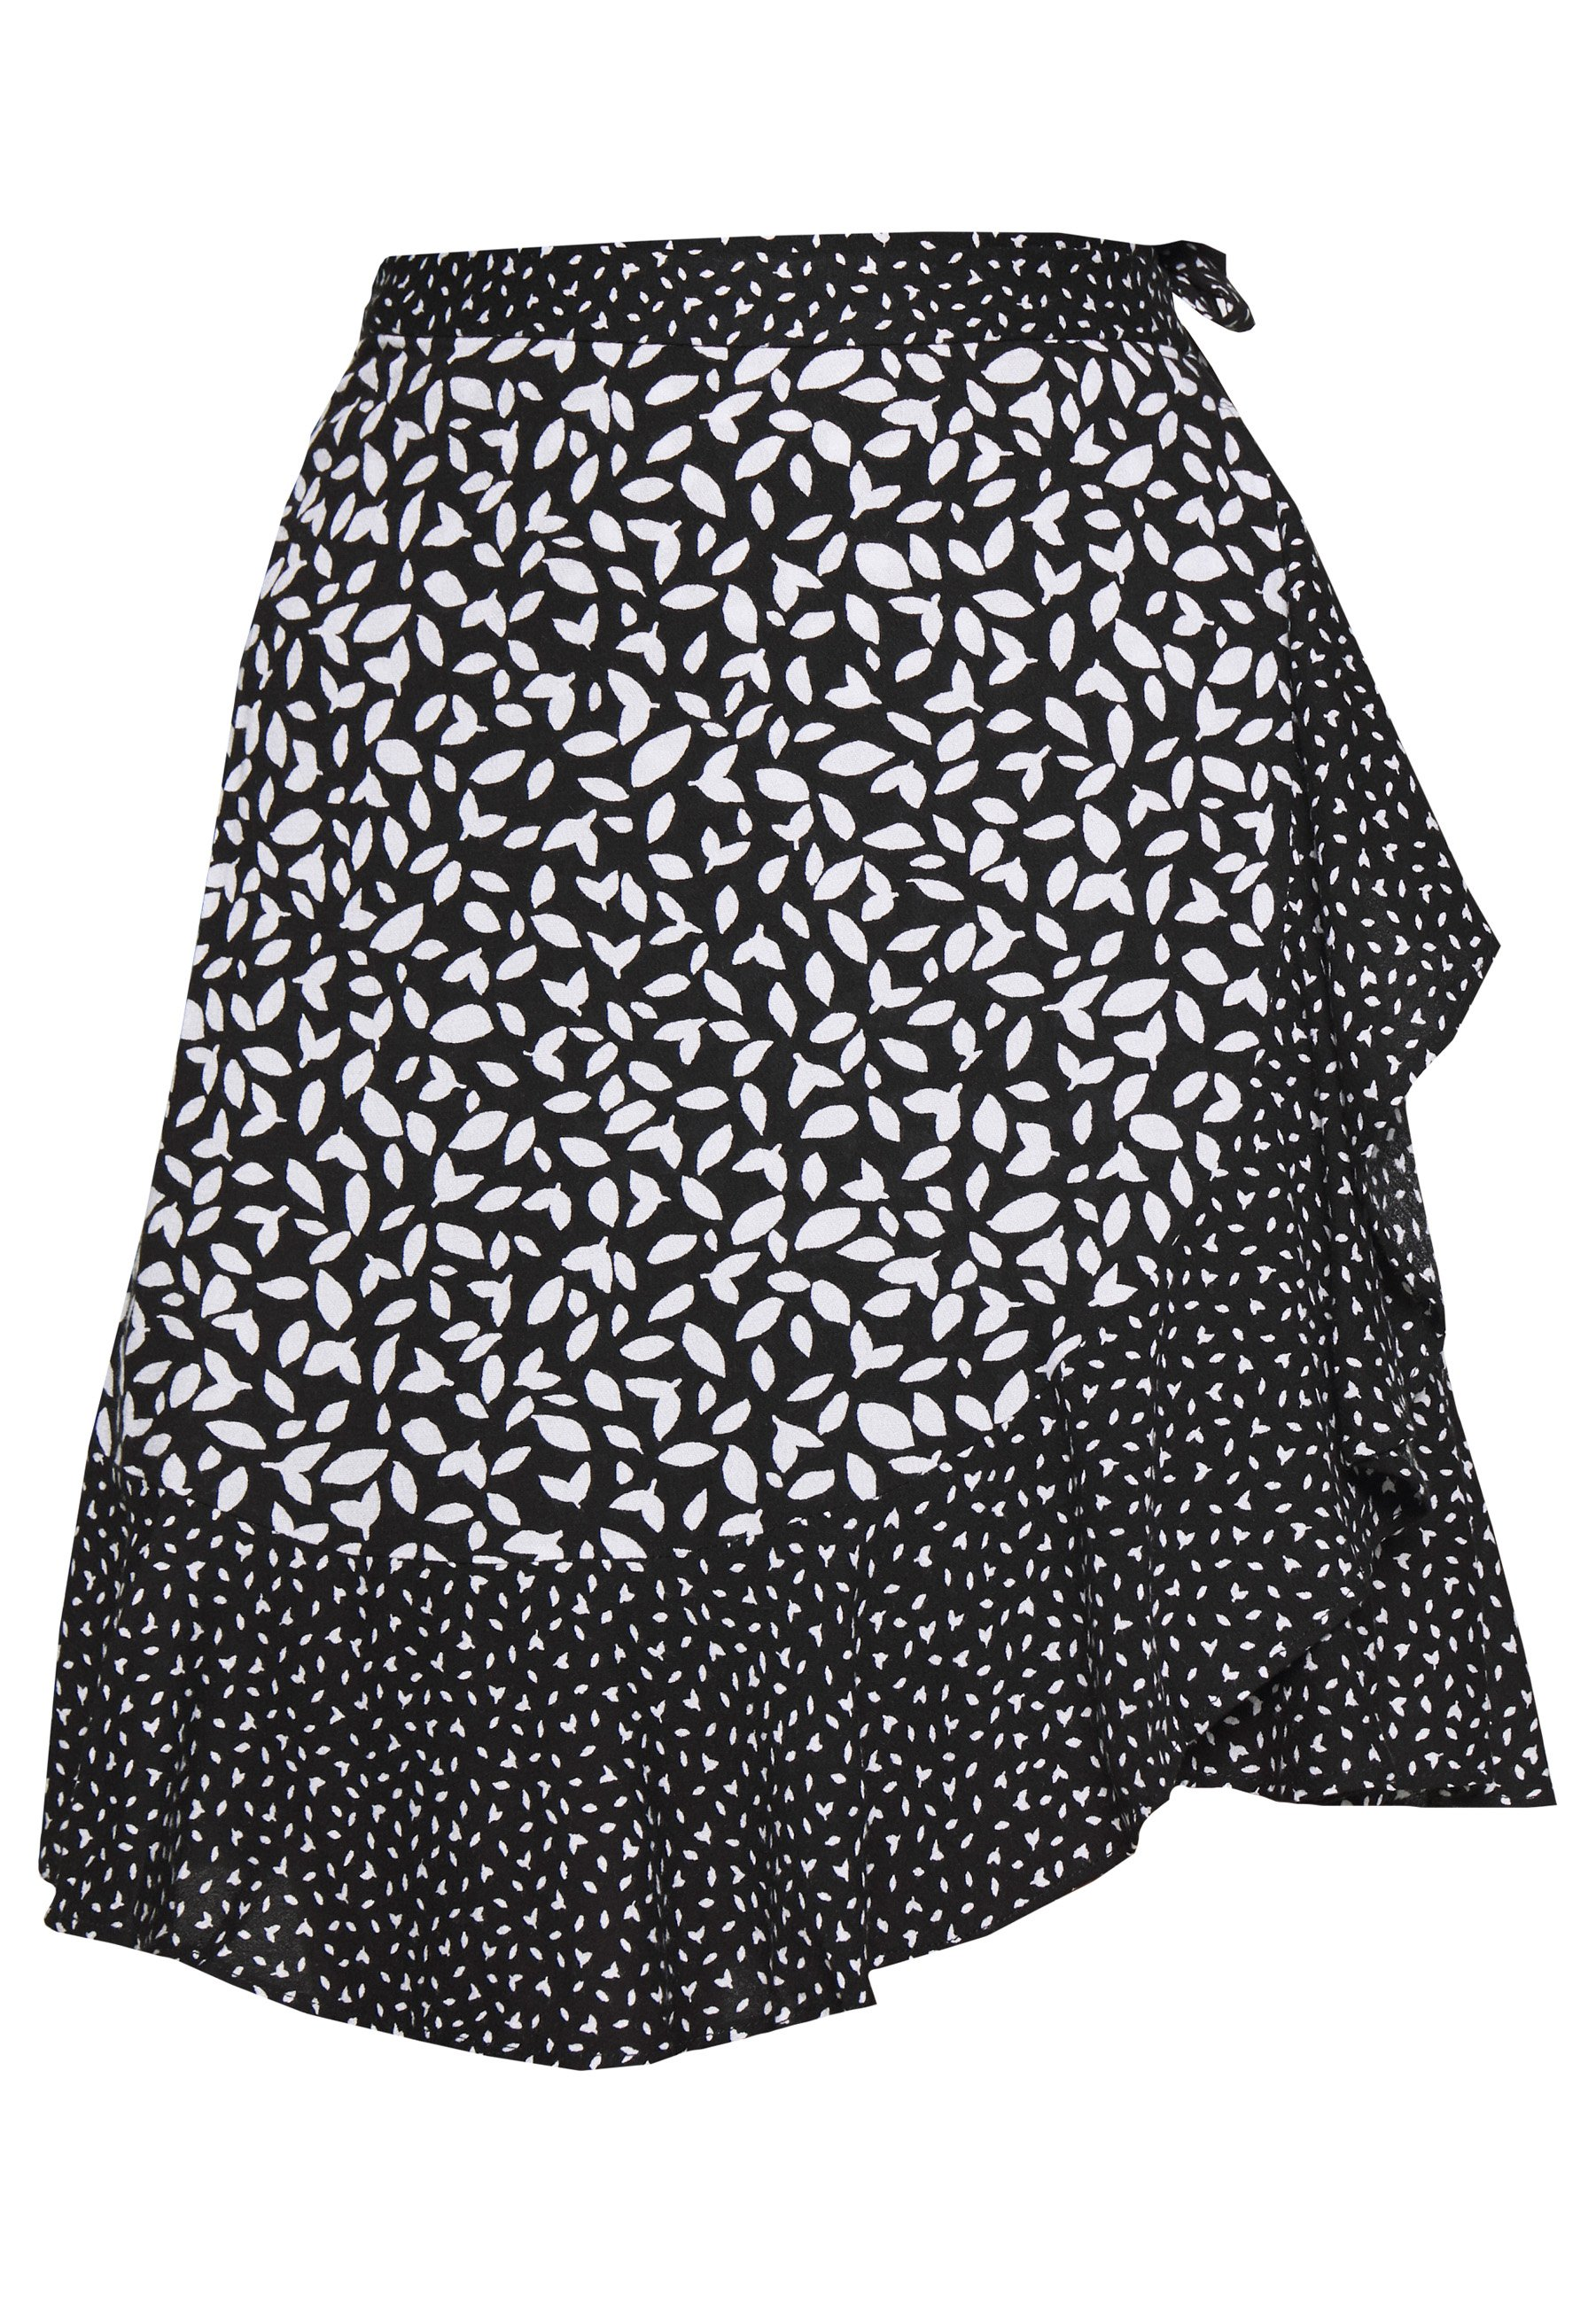 Banana Republic Ruffle Mini Skirt - Wrap Black